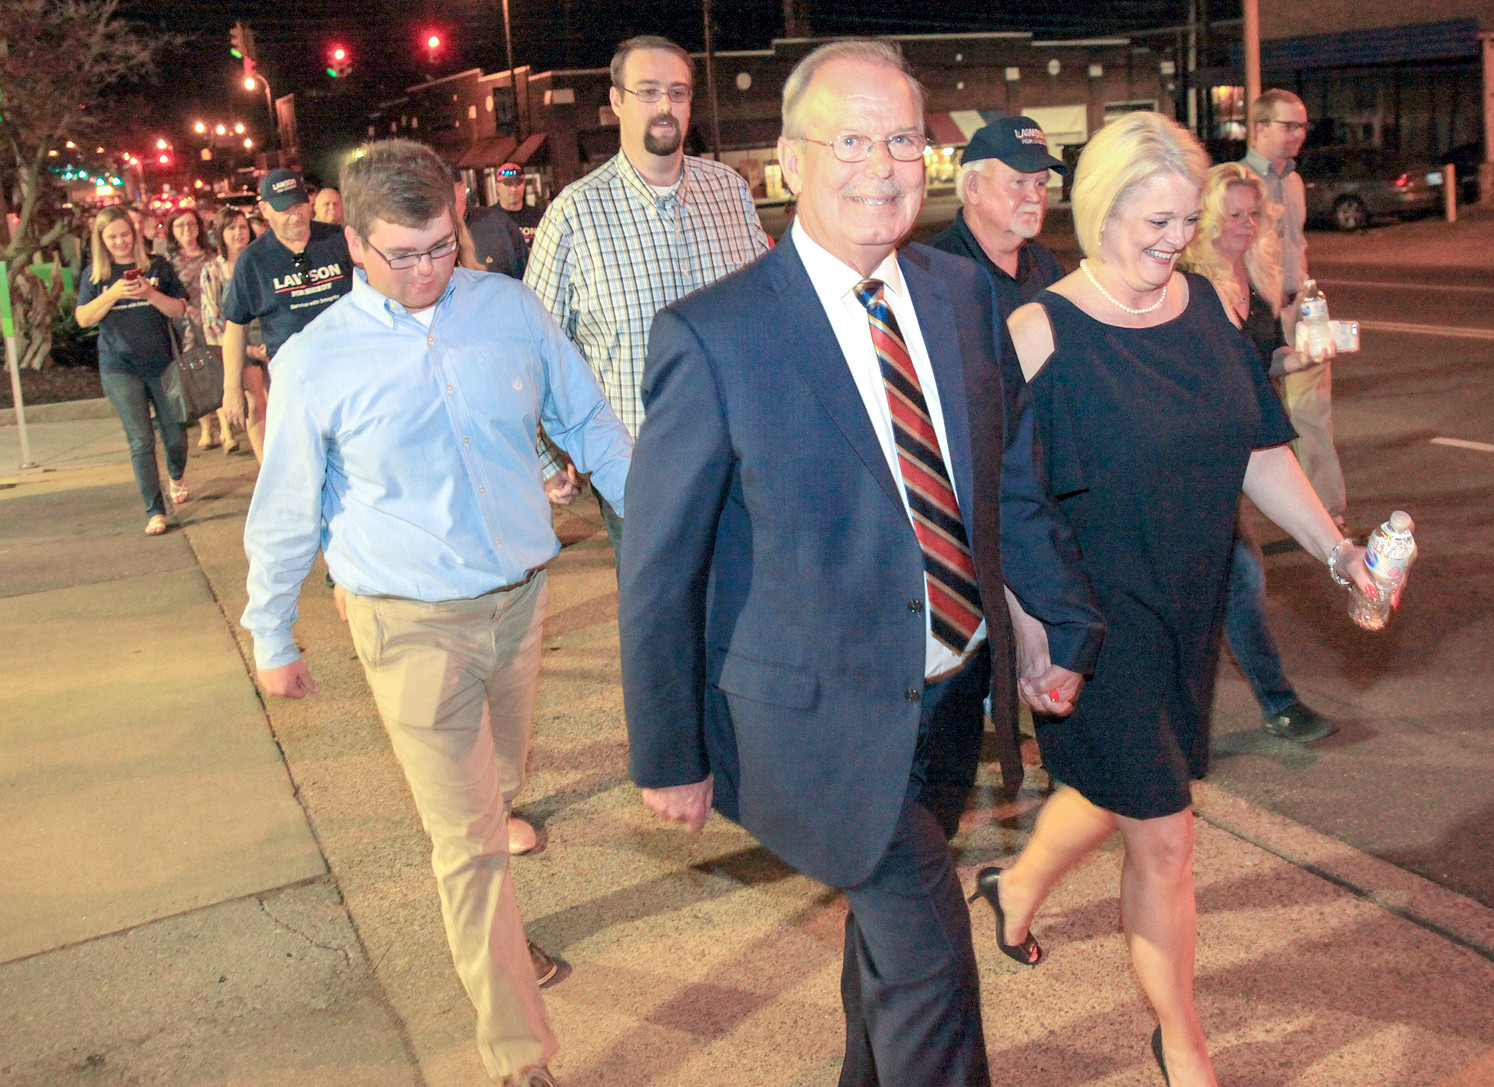 STEVE LAWSON, center, and his wife, Connie, lead the string of supporters attending the Museum Center election-night gathering on a walk to the Bradley County Courthouse Plaza to celebrate his impending win in the Bradley County sheriff's race.